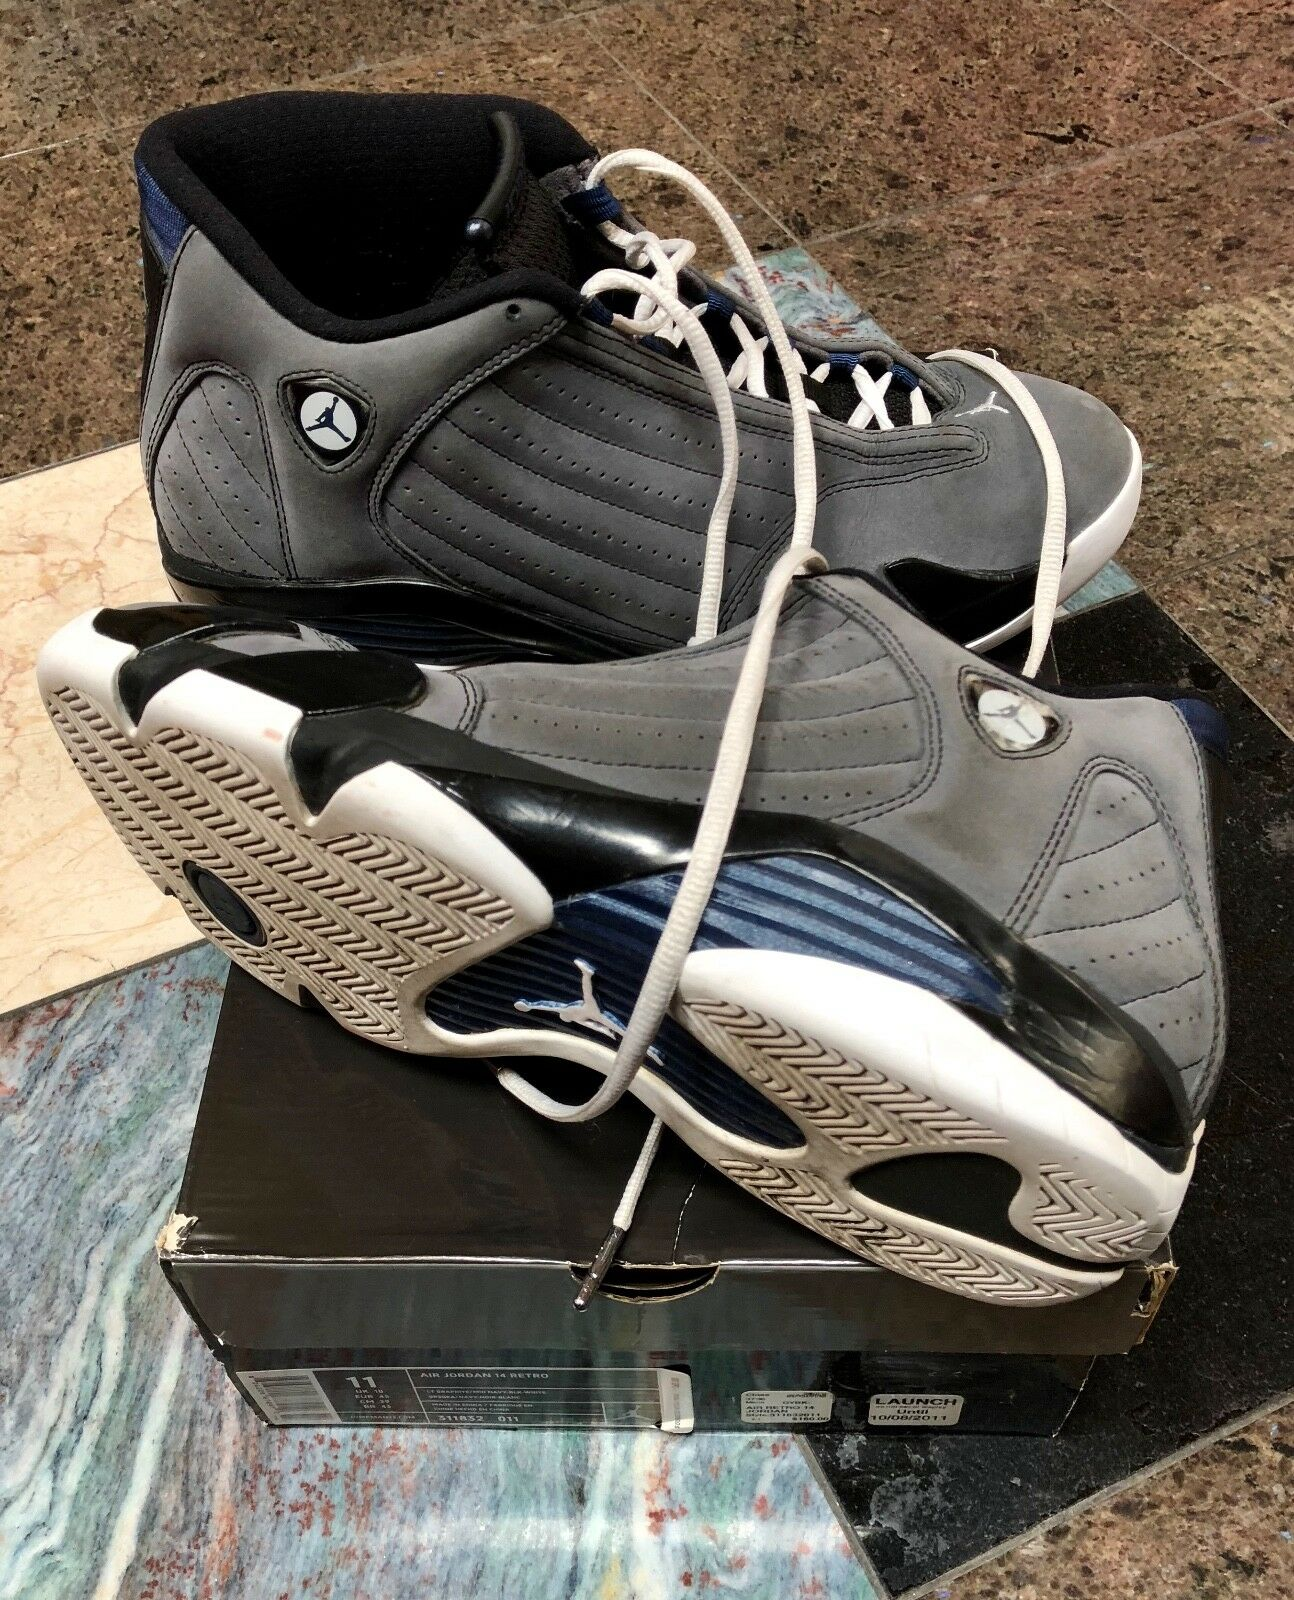 *RARE NIKE Air Jordan 14 XIV IV IX XIII Retro Graphite Grey Navy 311832-011 11* Cheap women's shoes women's shoes